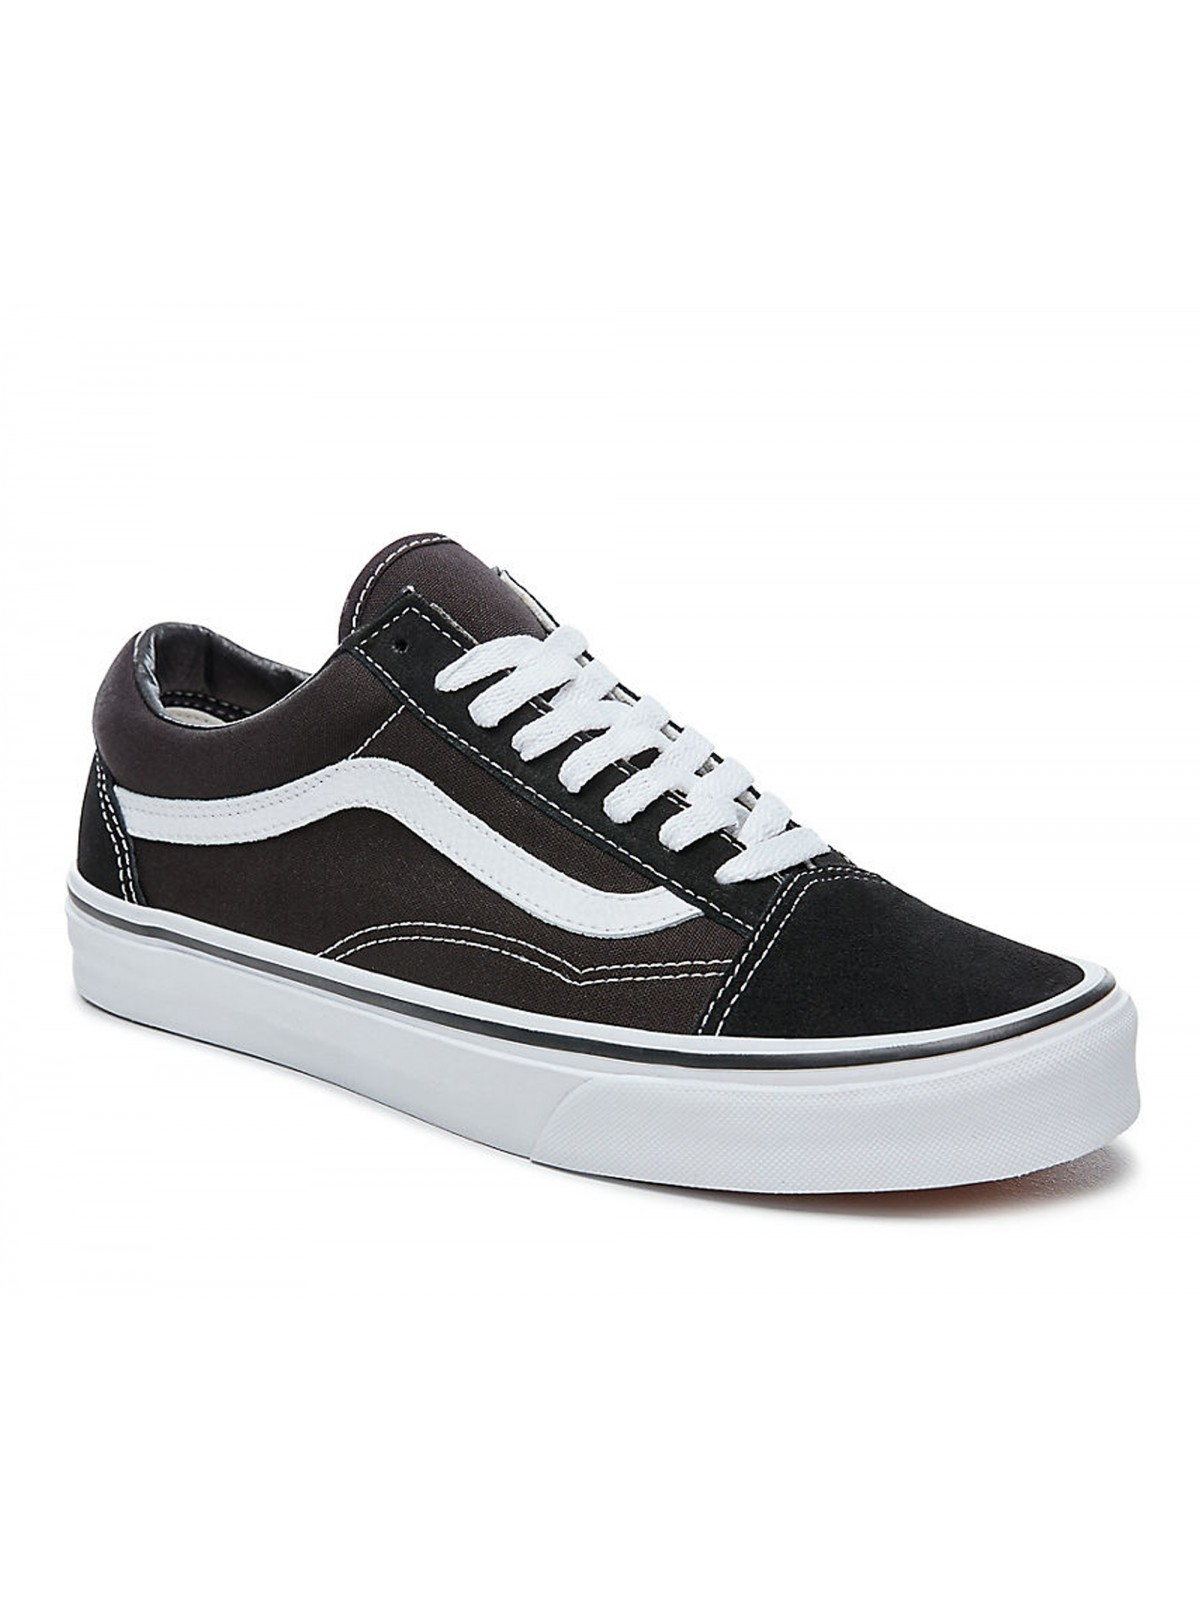 Vans Old Skool black / blanc